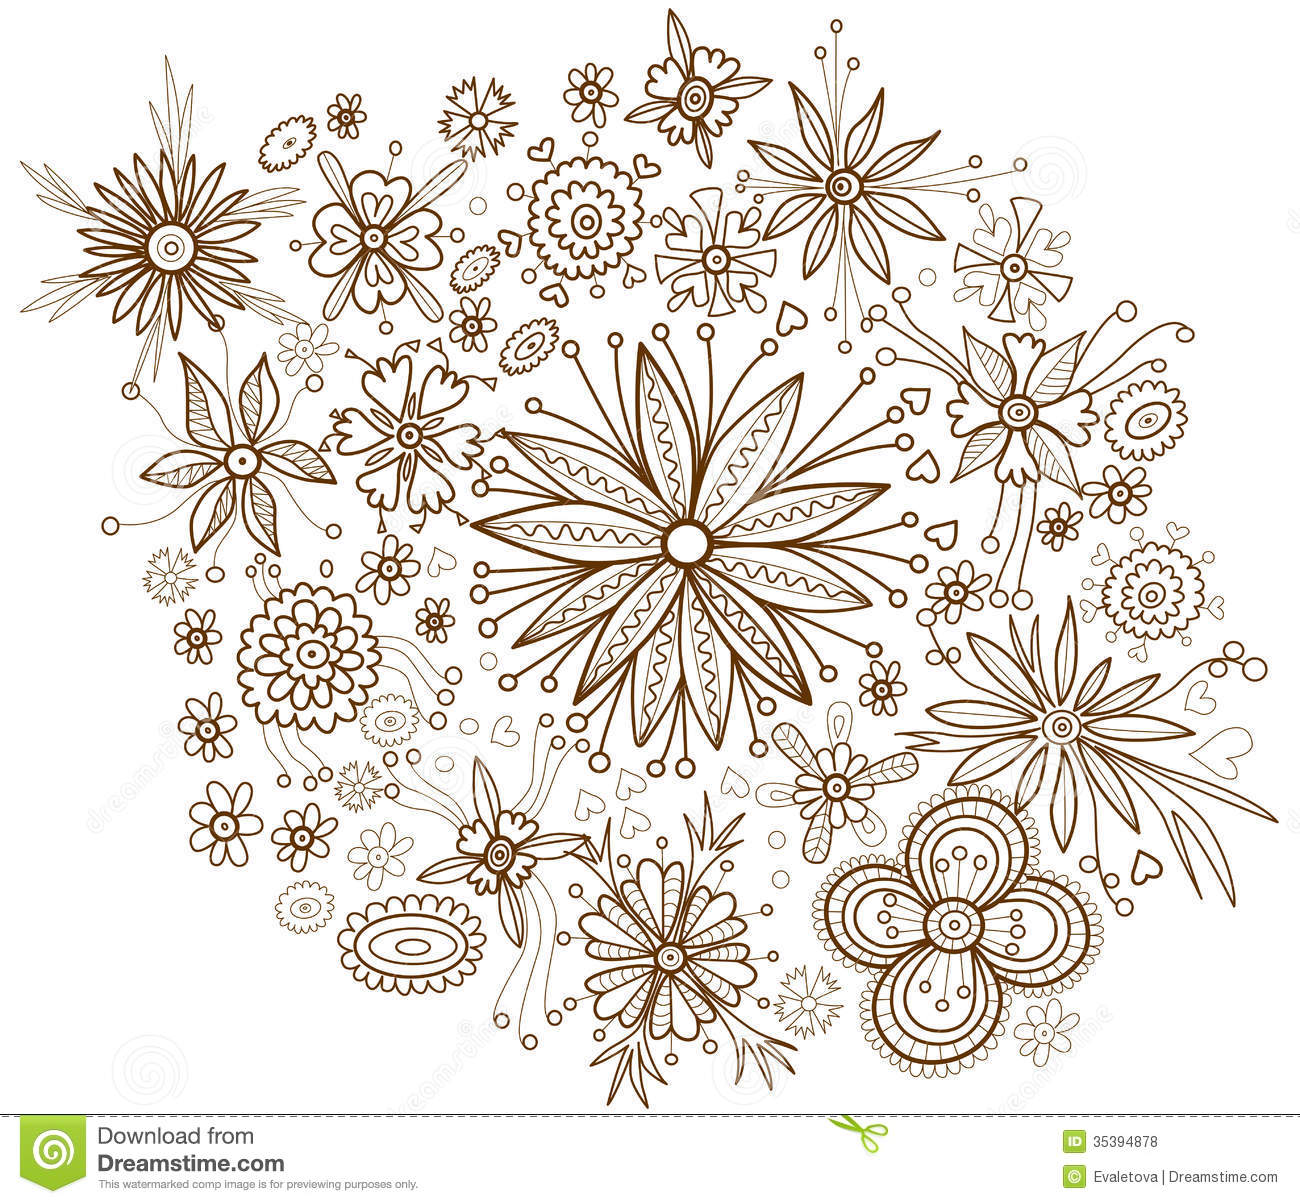 Flowers Coloring Book Jepsen Decorative Floral Background With Beautiful Flower Royalty